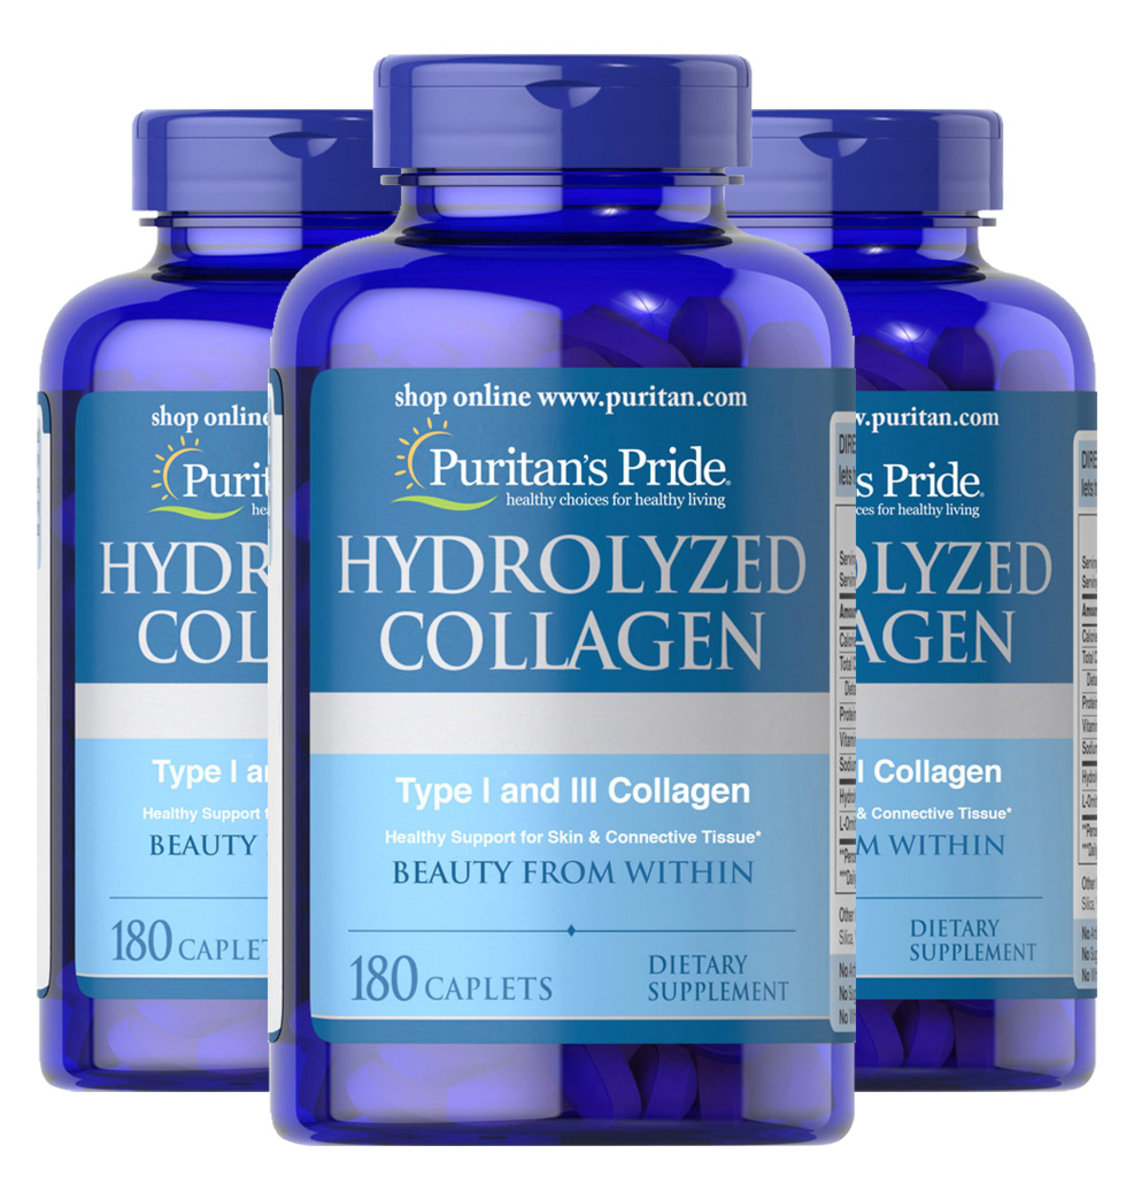 2x Hydrolyzed Collagen 1,000 mg 180s (EXP2/2021) Free 1 blt